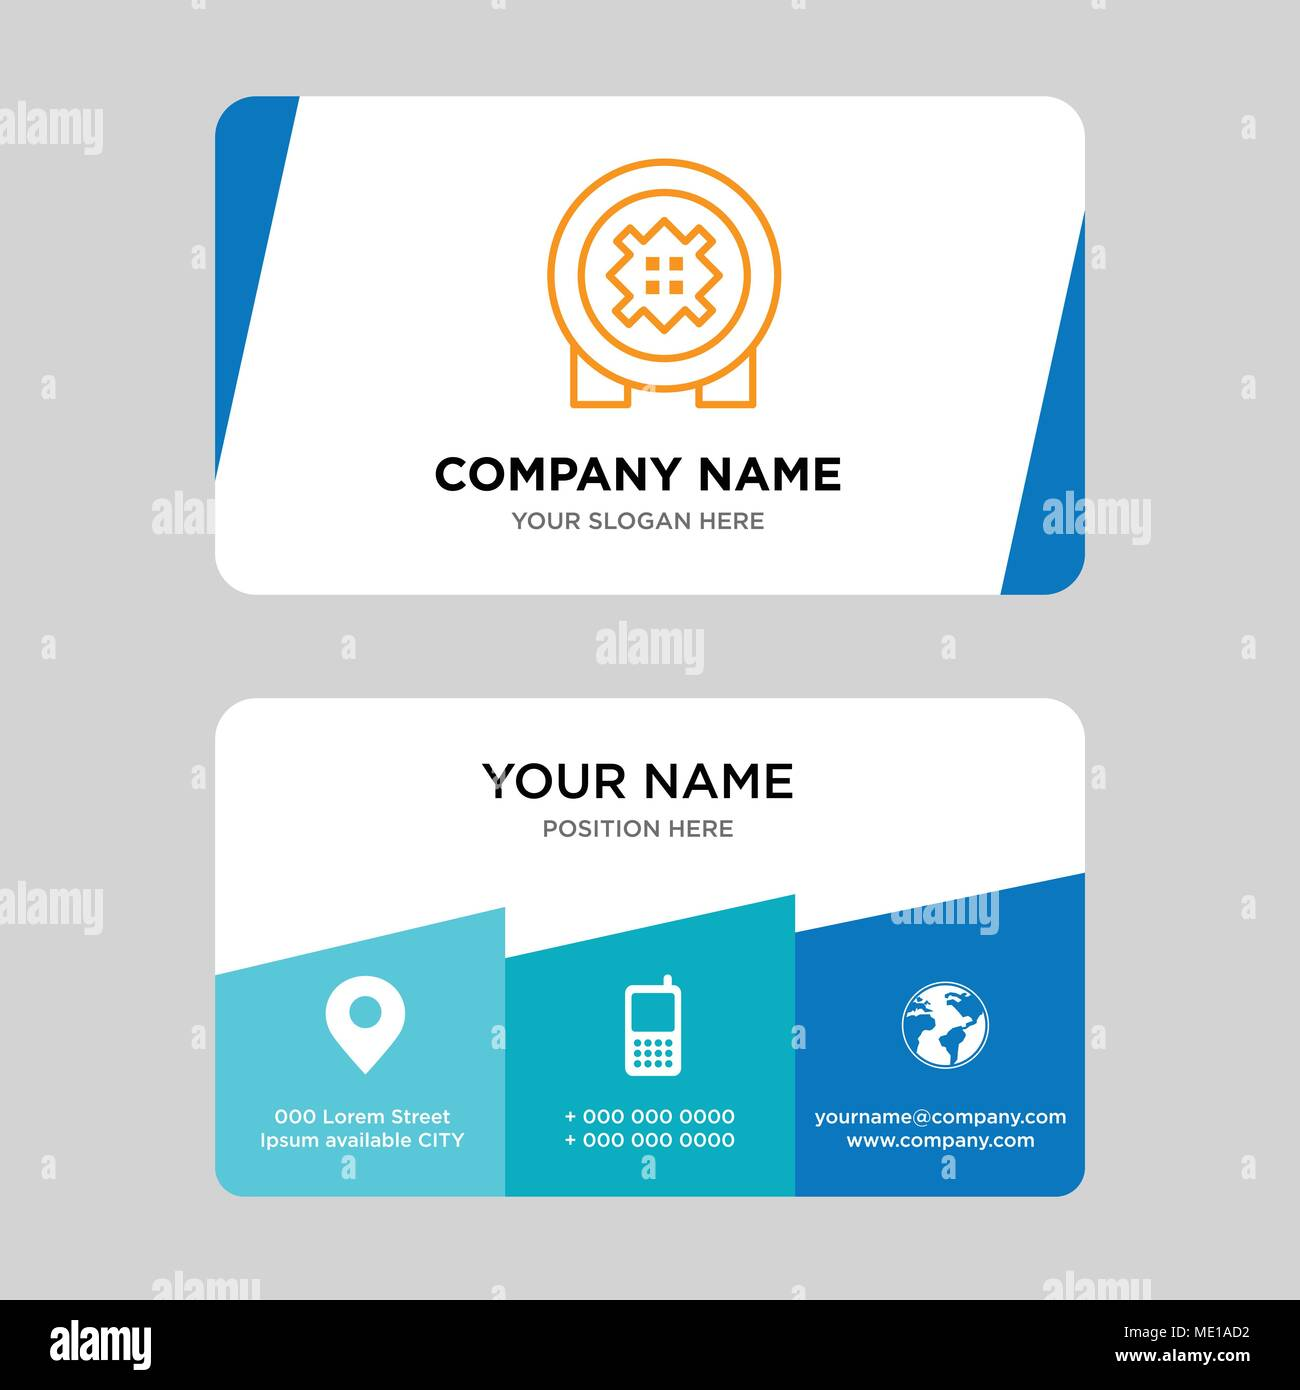 Bank safe business card design template visiting for your company bank safe business card design template visiting for your company modern creative and clean identity card vector illustration colourmoves